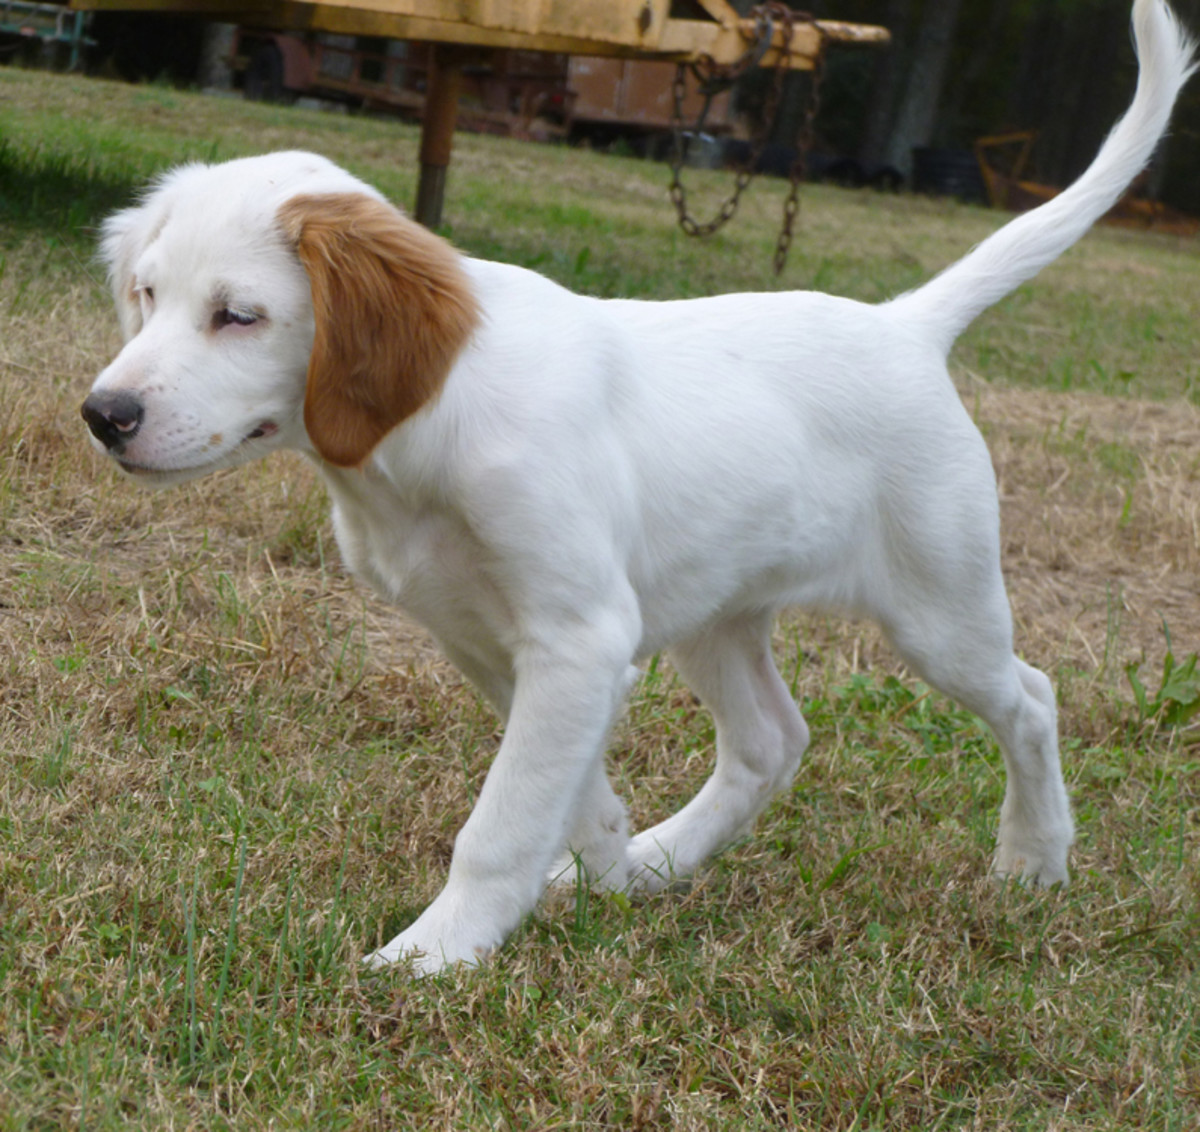 Pictured above is a tricolor English Setter puppy.  At this stage of growth, the puppy's markings have not fully developed.